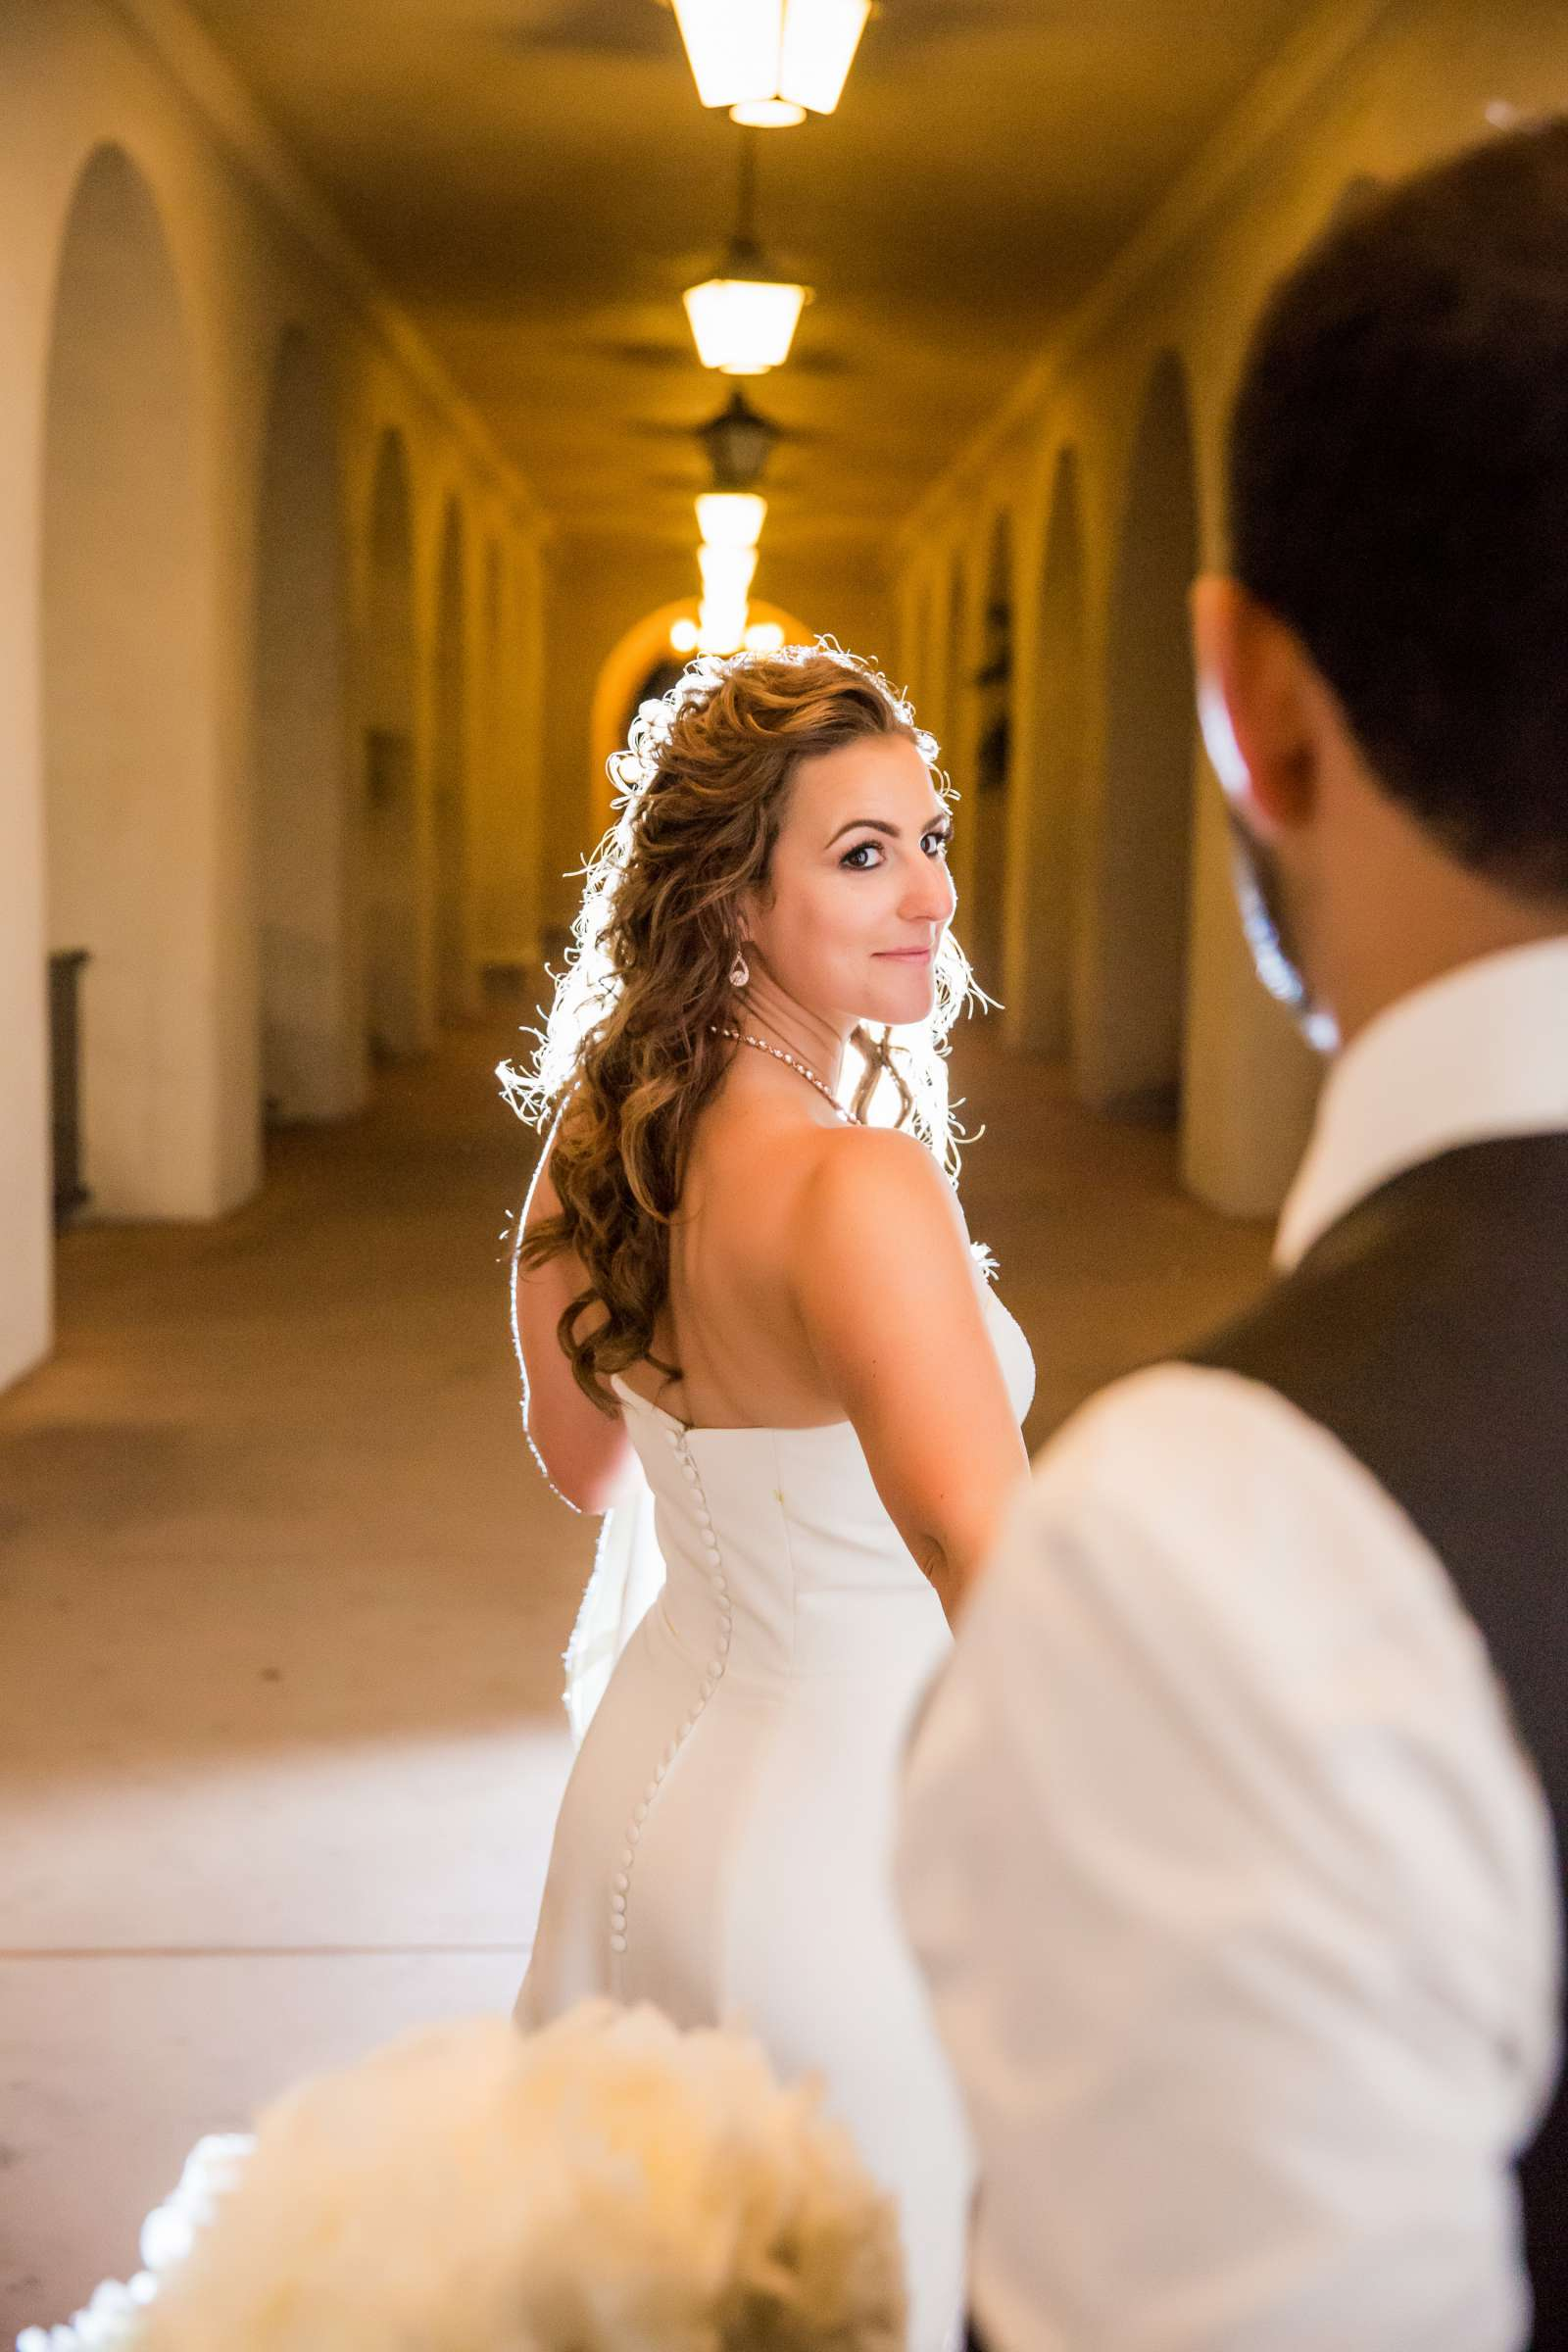 San Diego Museum of Art Wedding coordinated by First Comes Love Weddings & Events, Ruthie and Larry Wedding Photo #236854 by True Photography